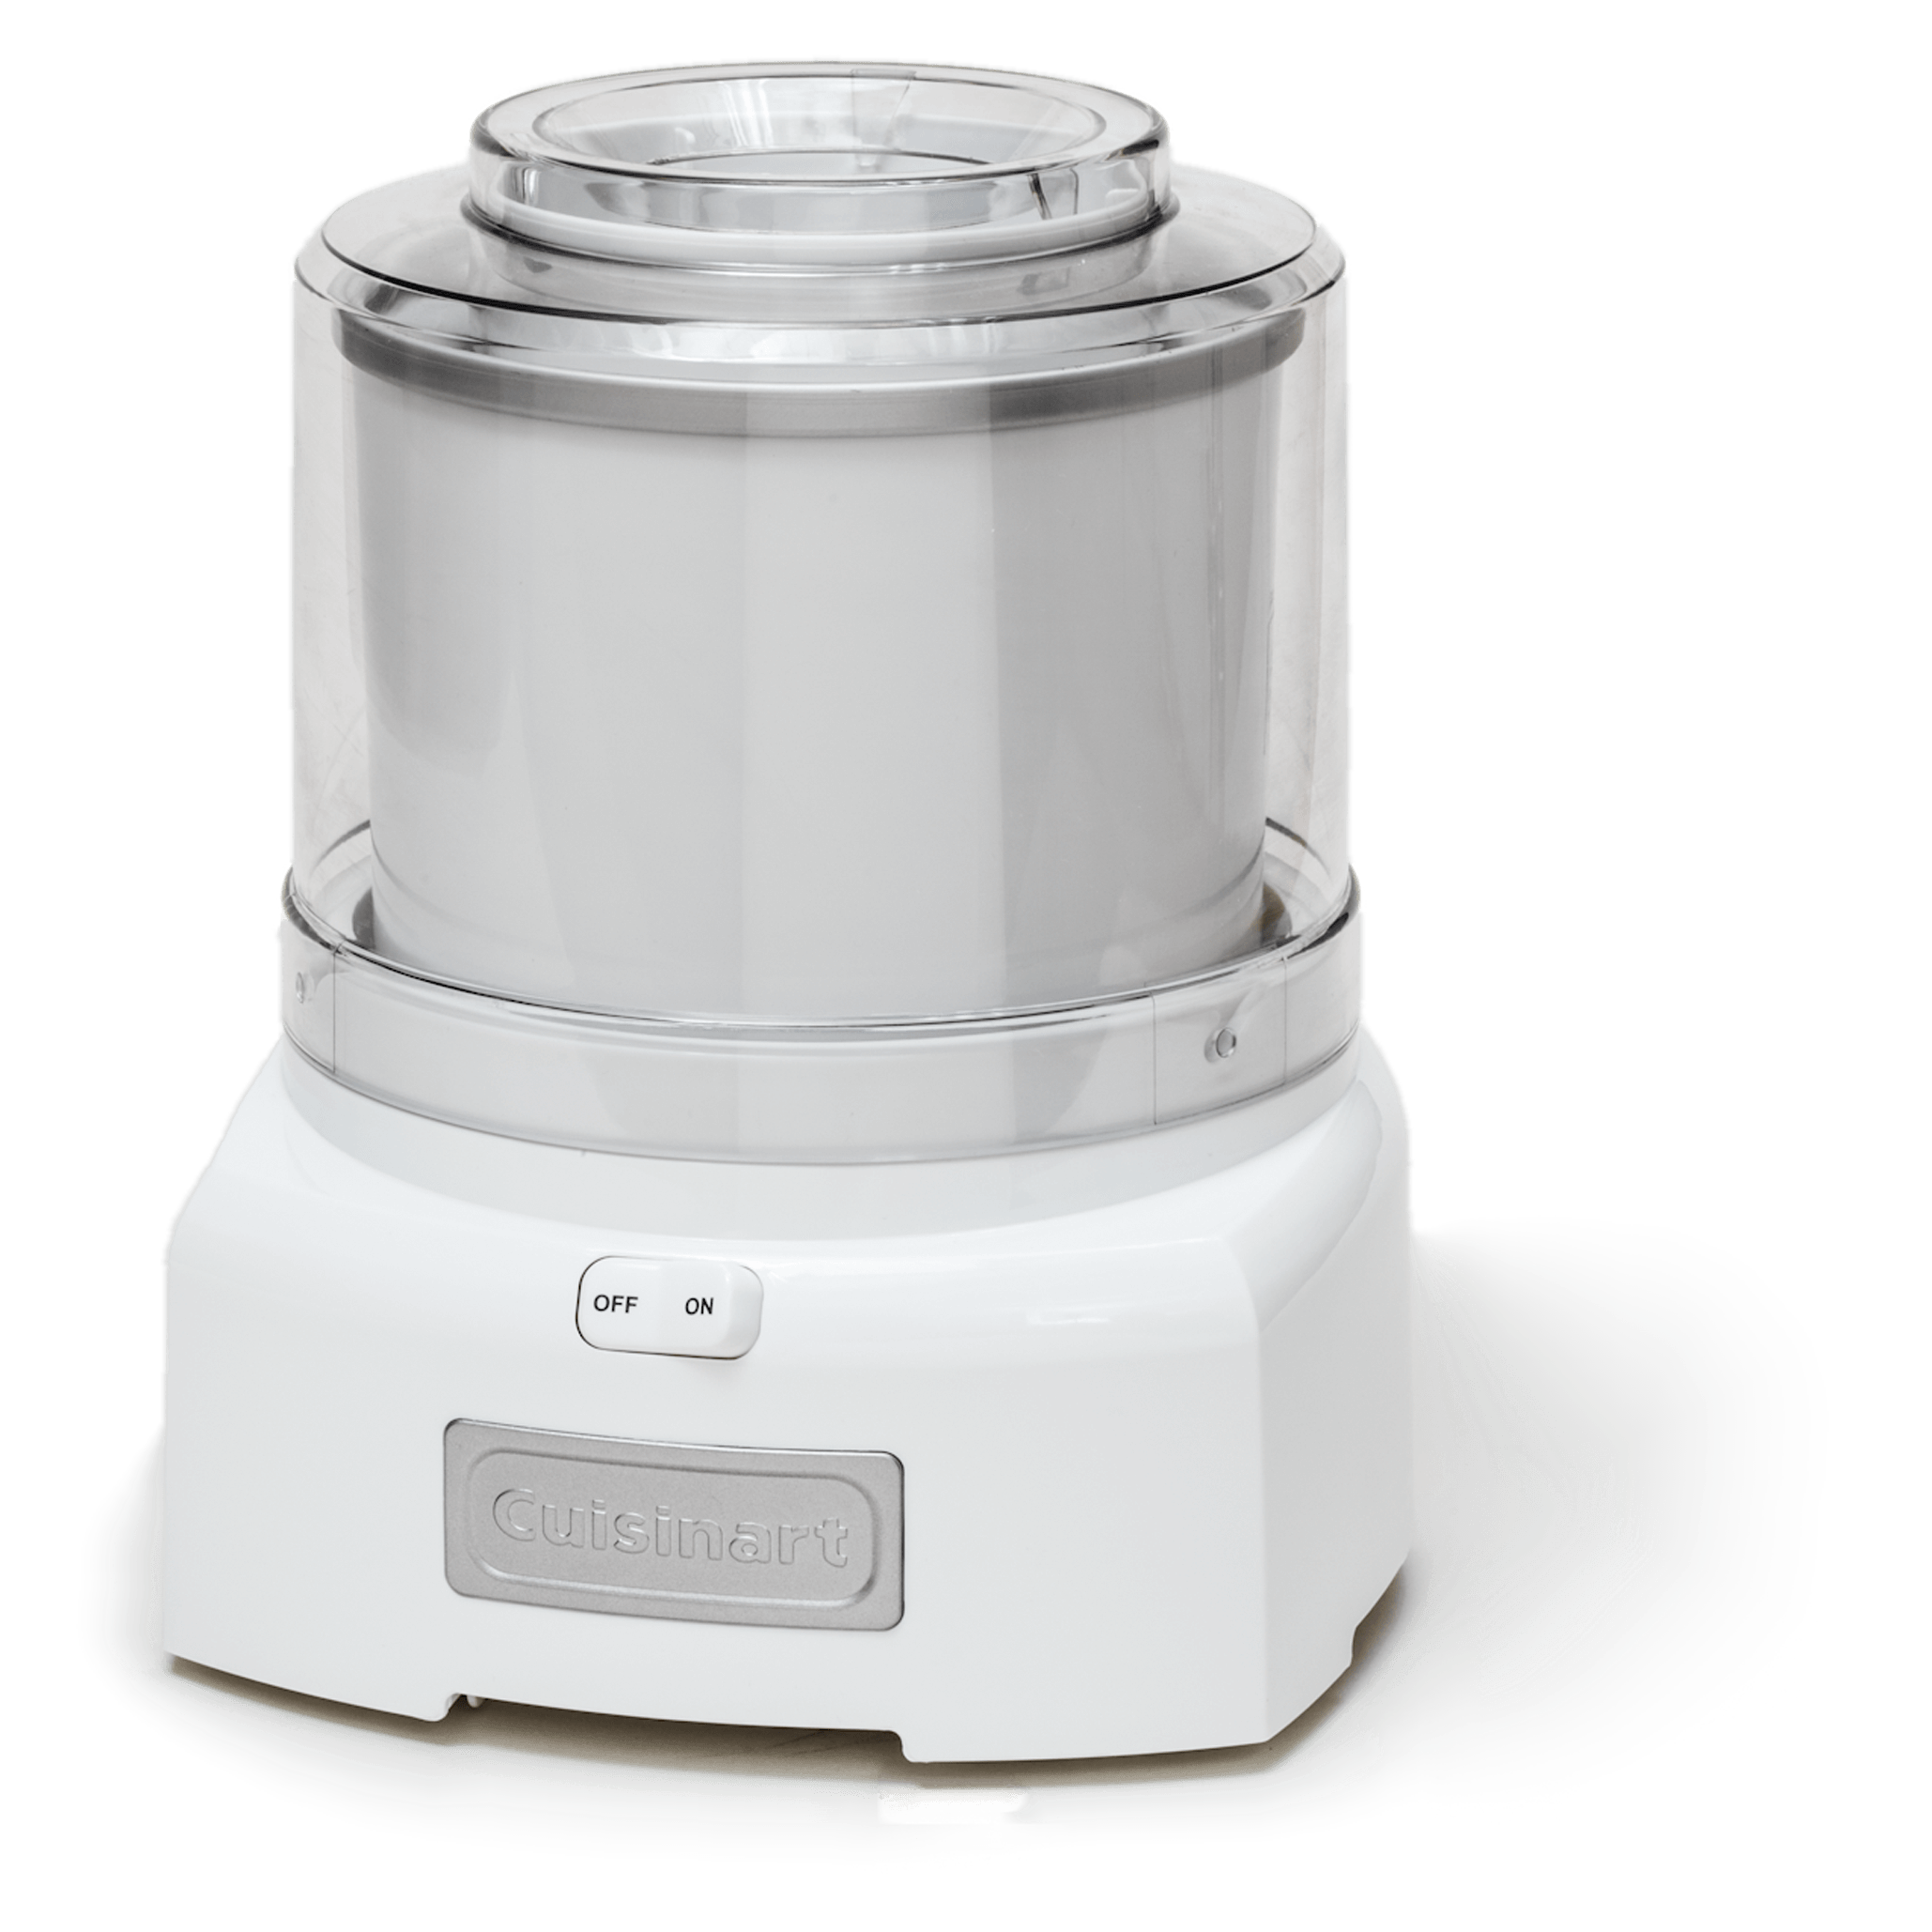 Uncategorized Cooks Kitchen Appliances browse equipment reviews for small appliances cooks illustrated ice cream makers